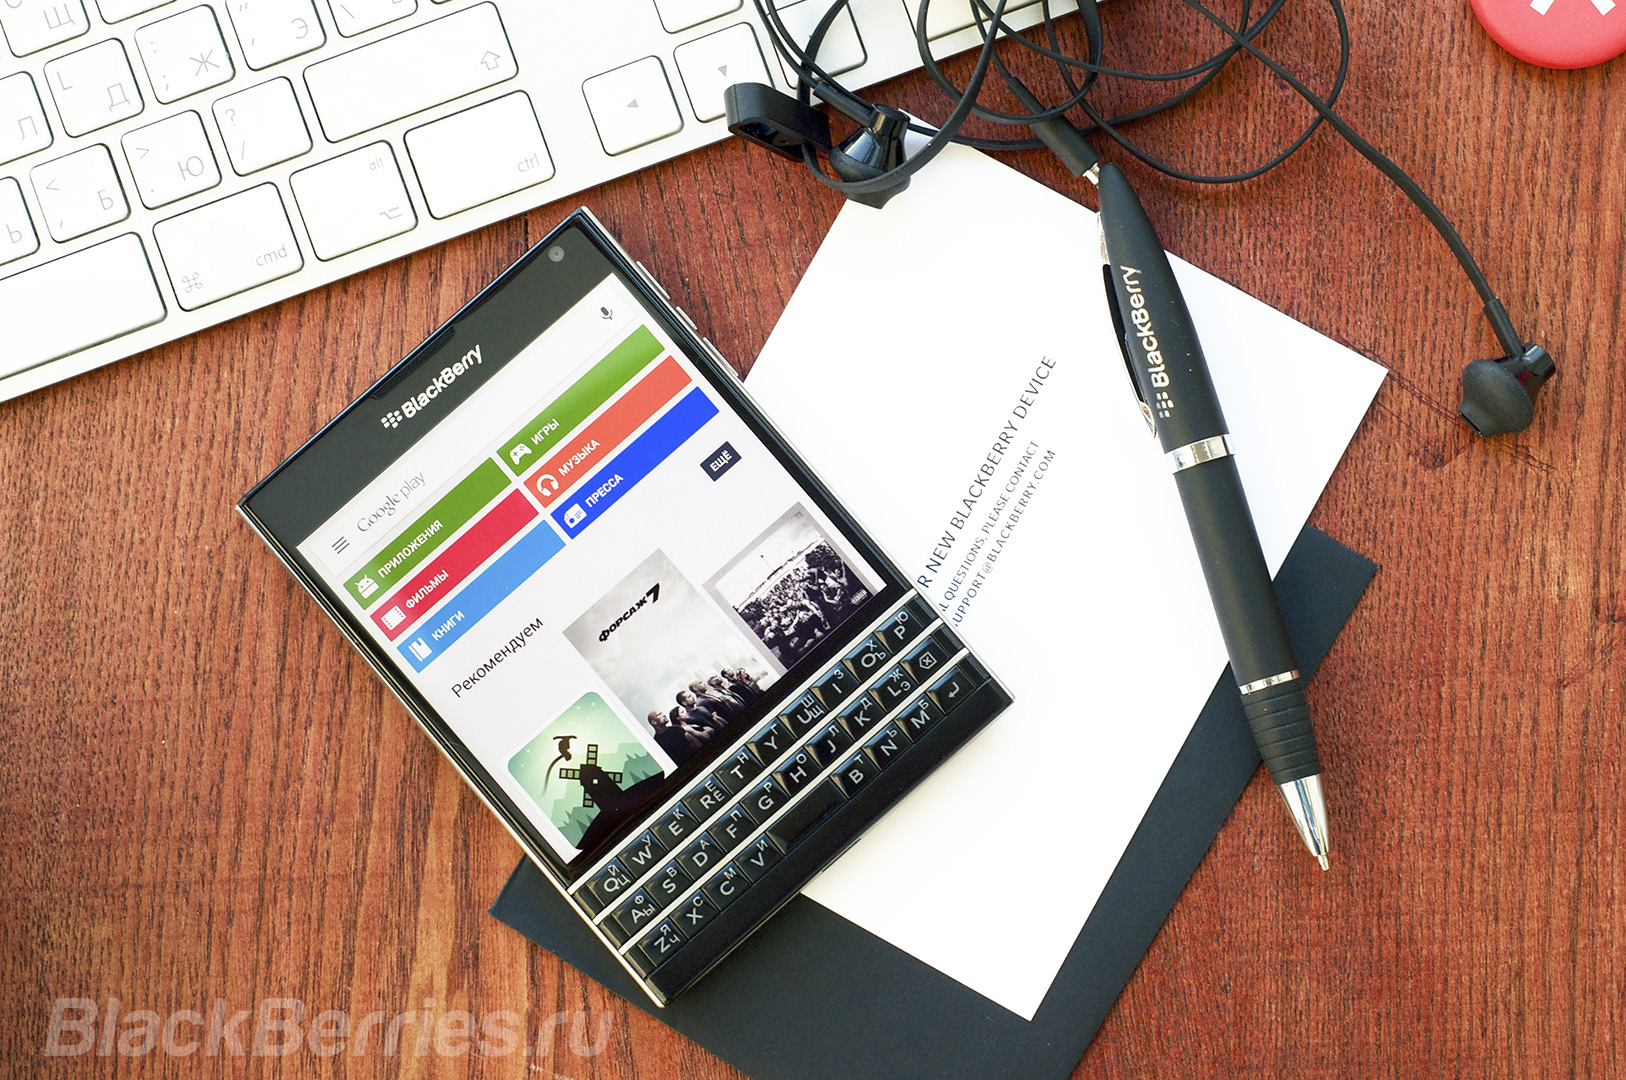 BlackBerry-Passport-Review-2016-33-1